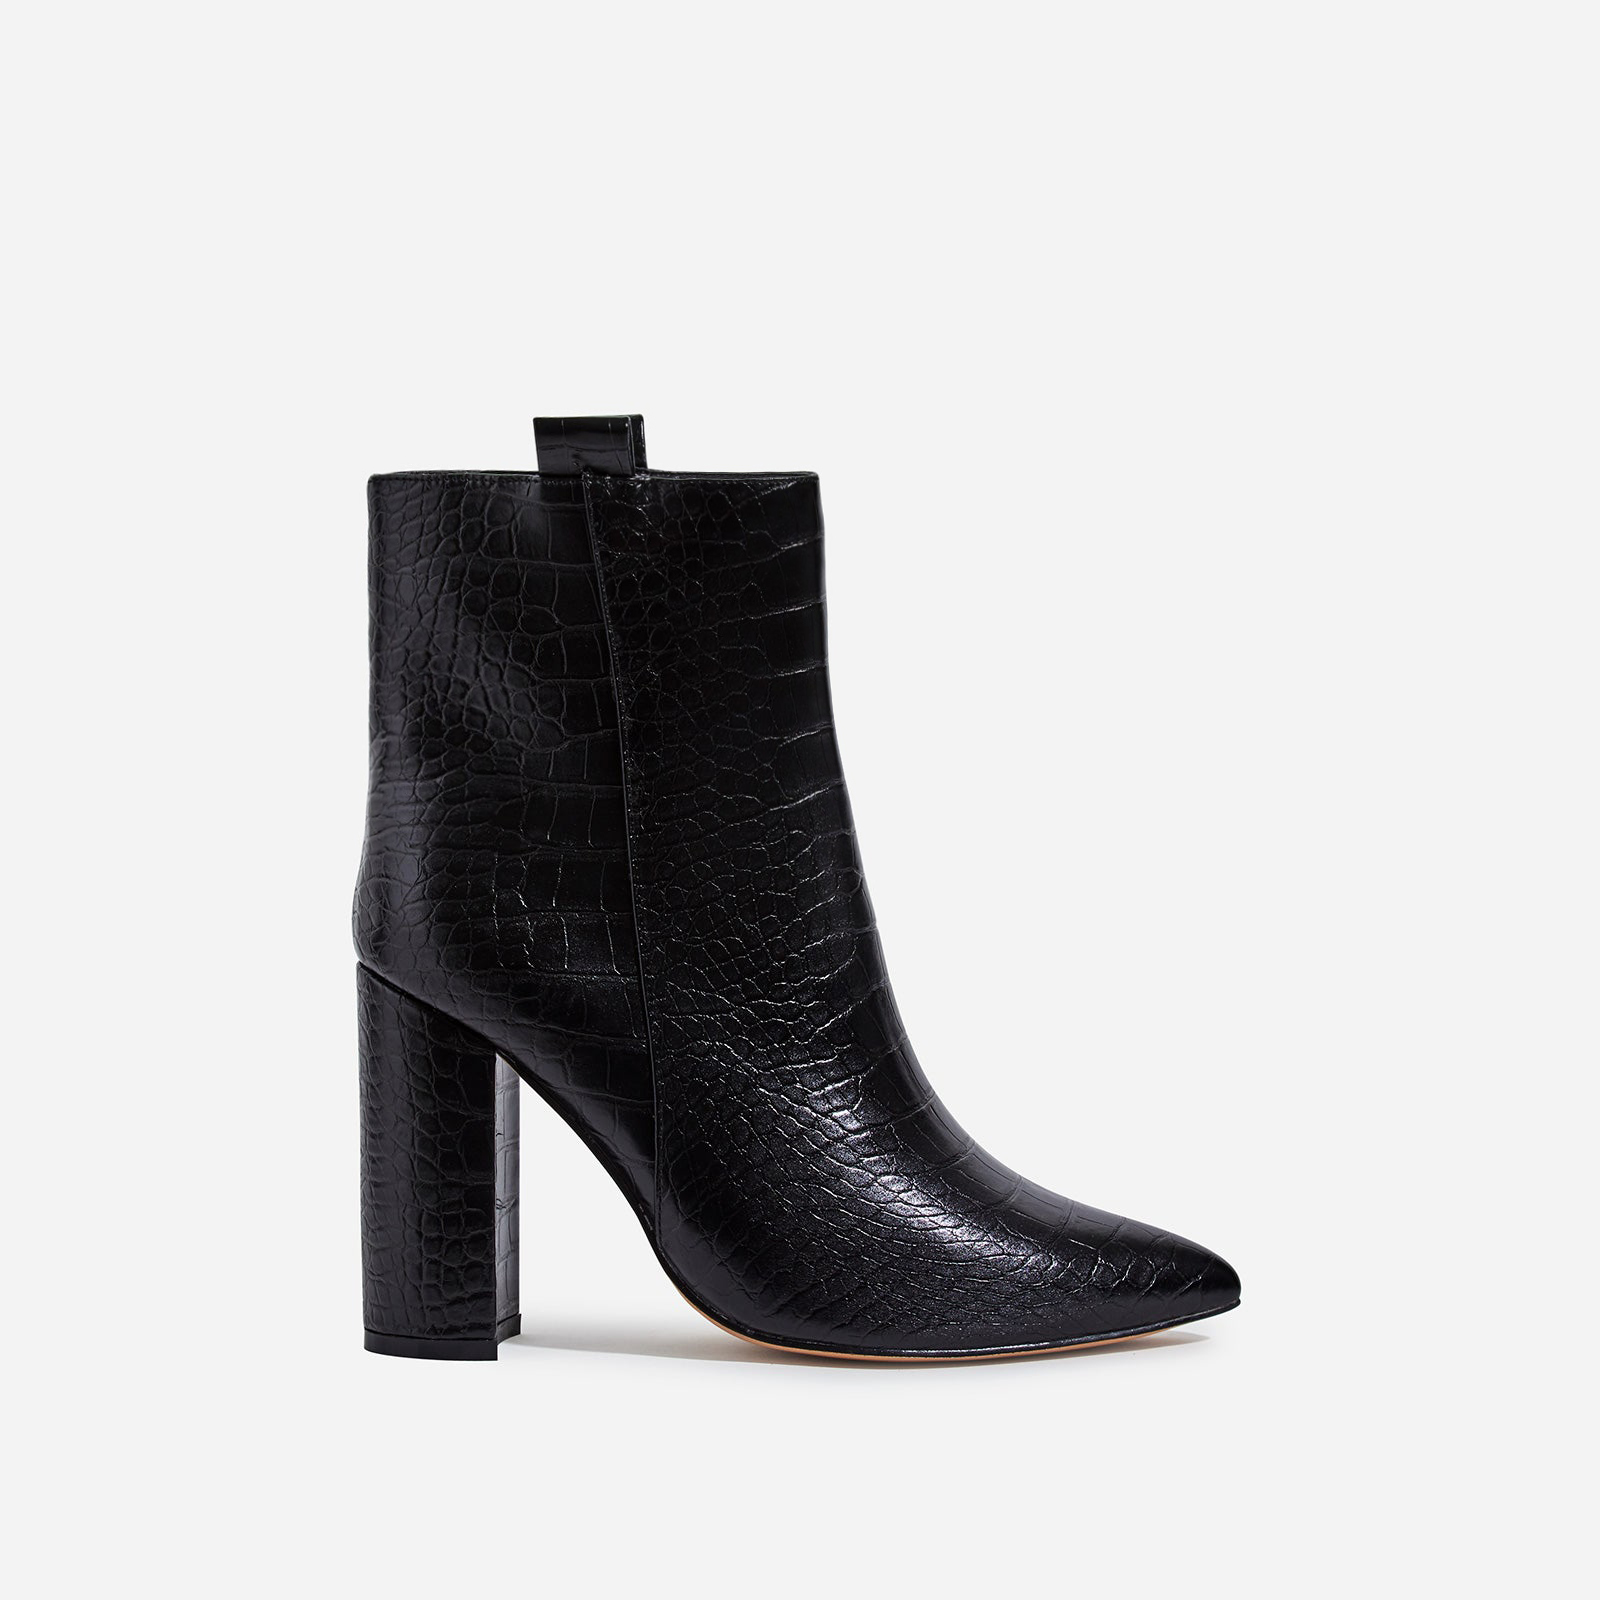 Monterey Block Heel Ankle Boot In Black Croc Print Faux Leather